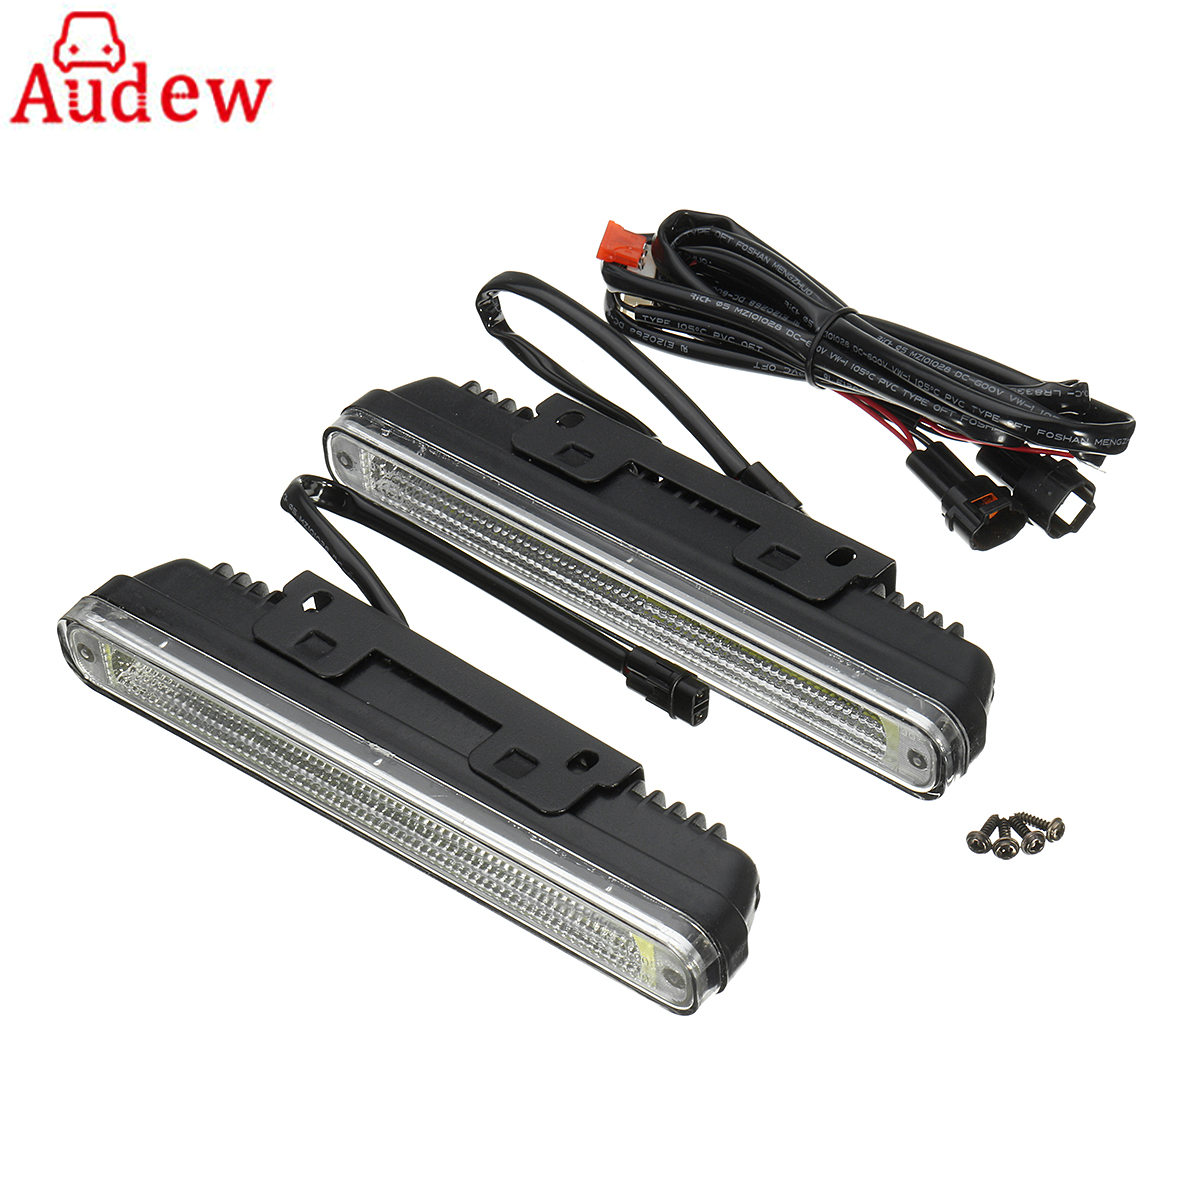 2Pcs Universal Car Daytime Running Light LED COB 12V DRL Auto Driving Front Fog Lamp White Bulb Waterproof 6000K 9005 hb3 55w halogen bulb super white headlight fog car lamp daytime running drl auto head light 5000k 12v